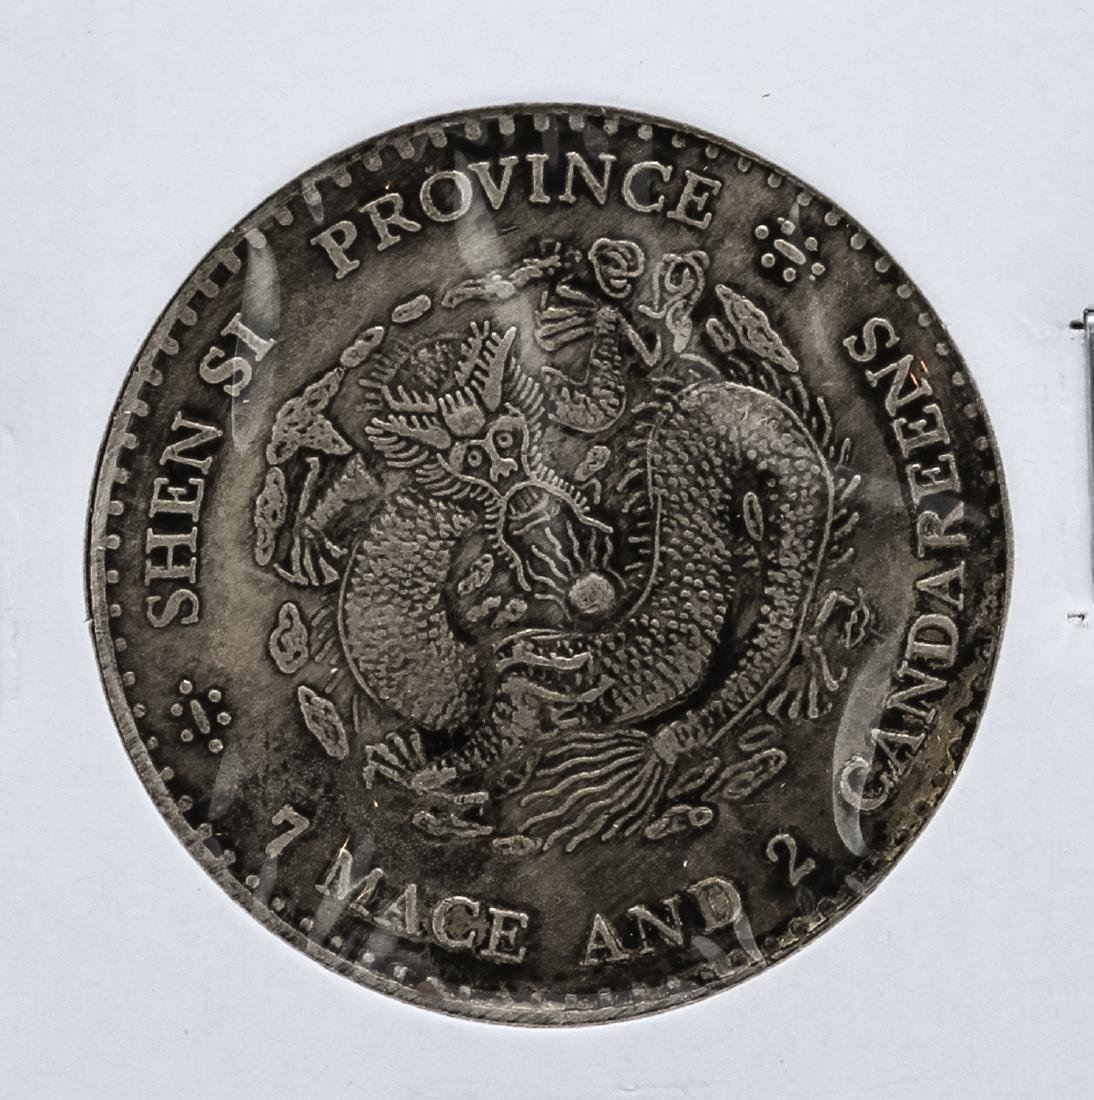 Shen SI Province 7 Mace and 2 Candareens Coin